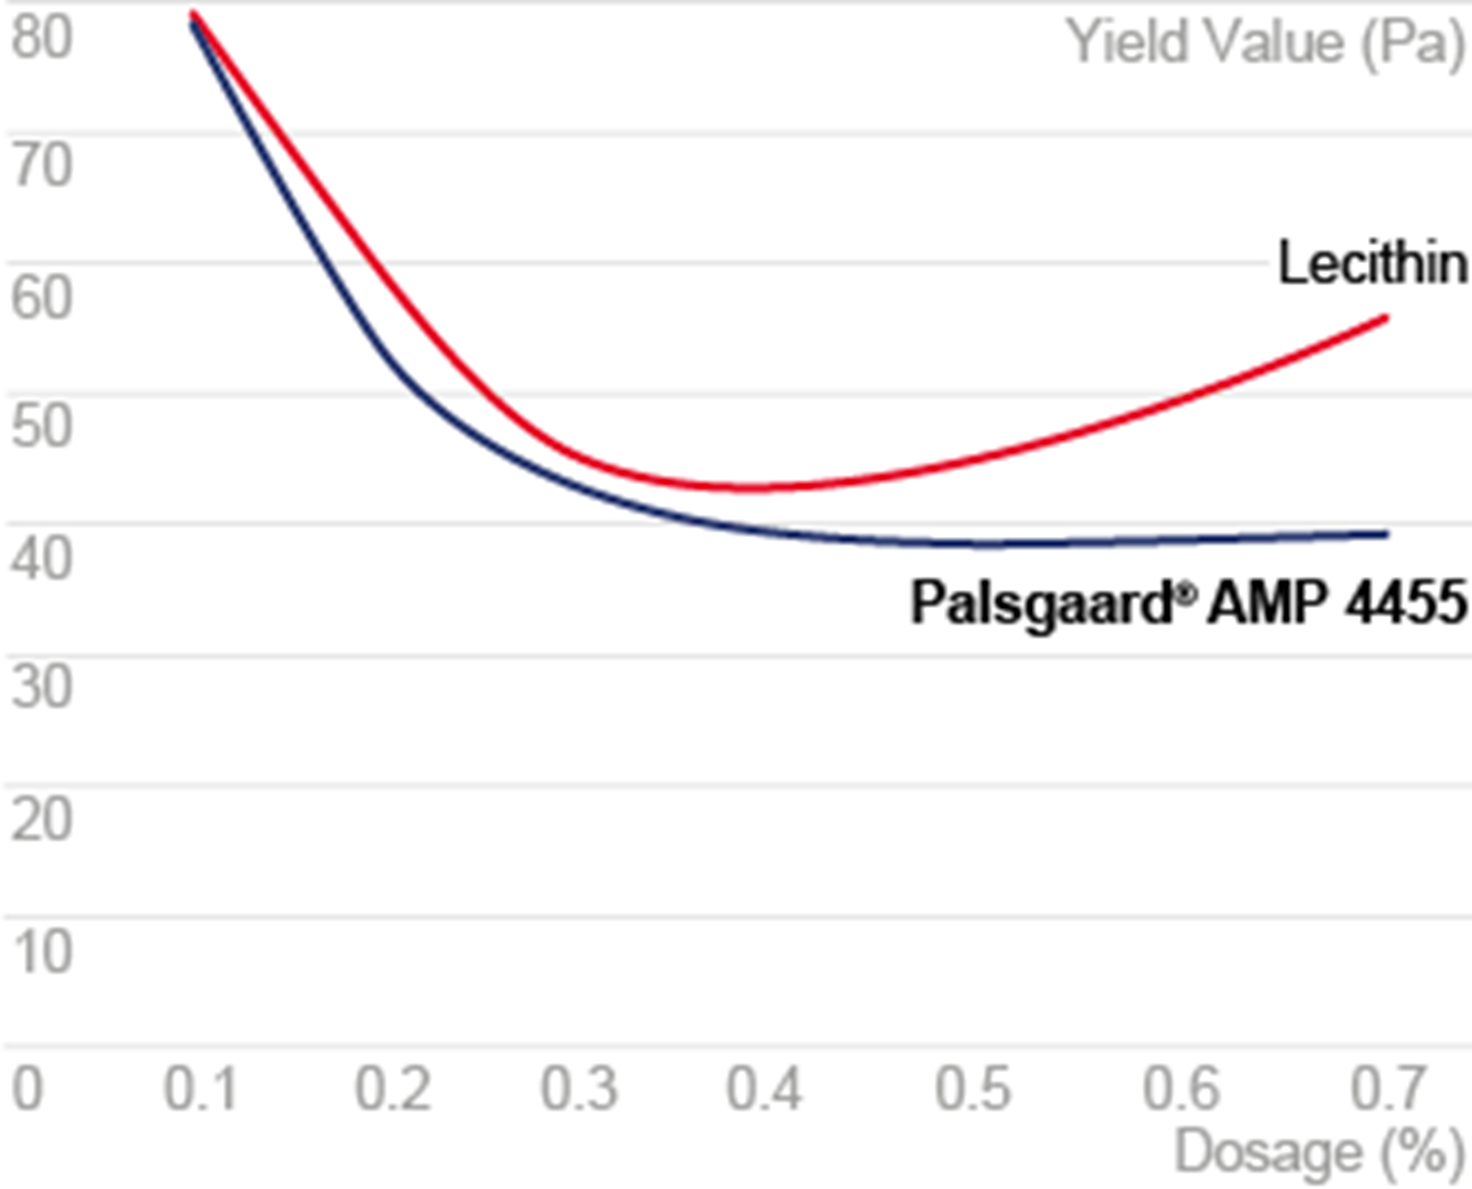 Yield Value Palsgaard AMP 4455 Vs Lecithin 5